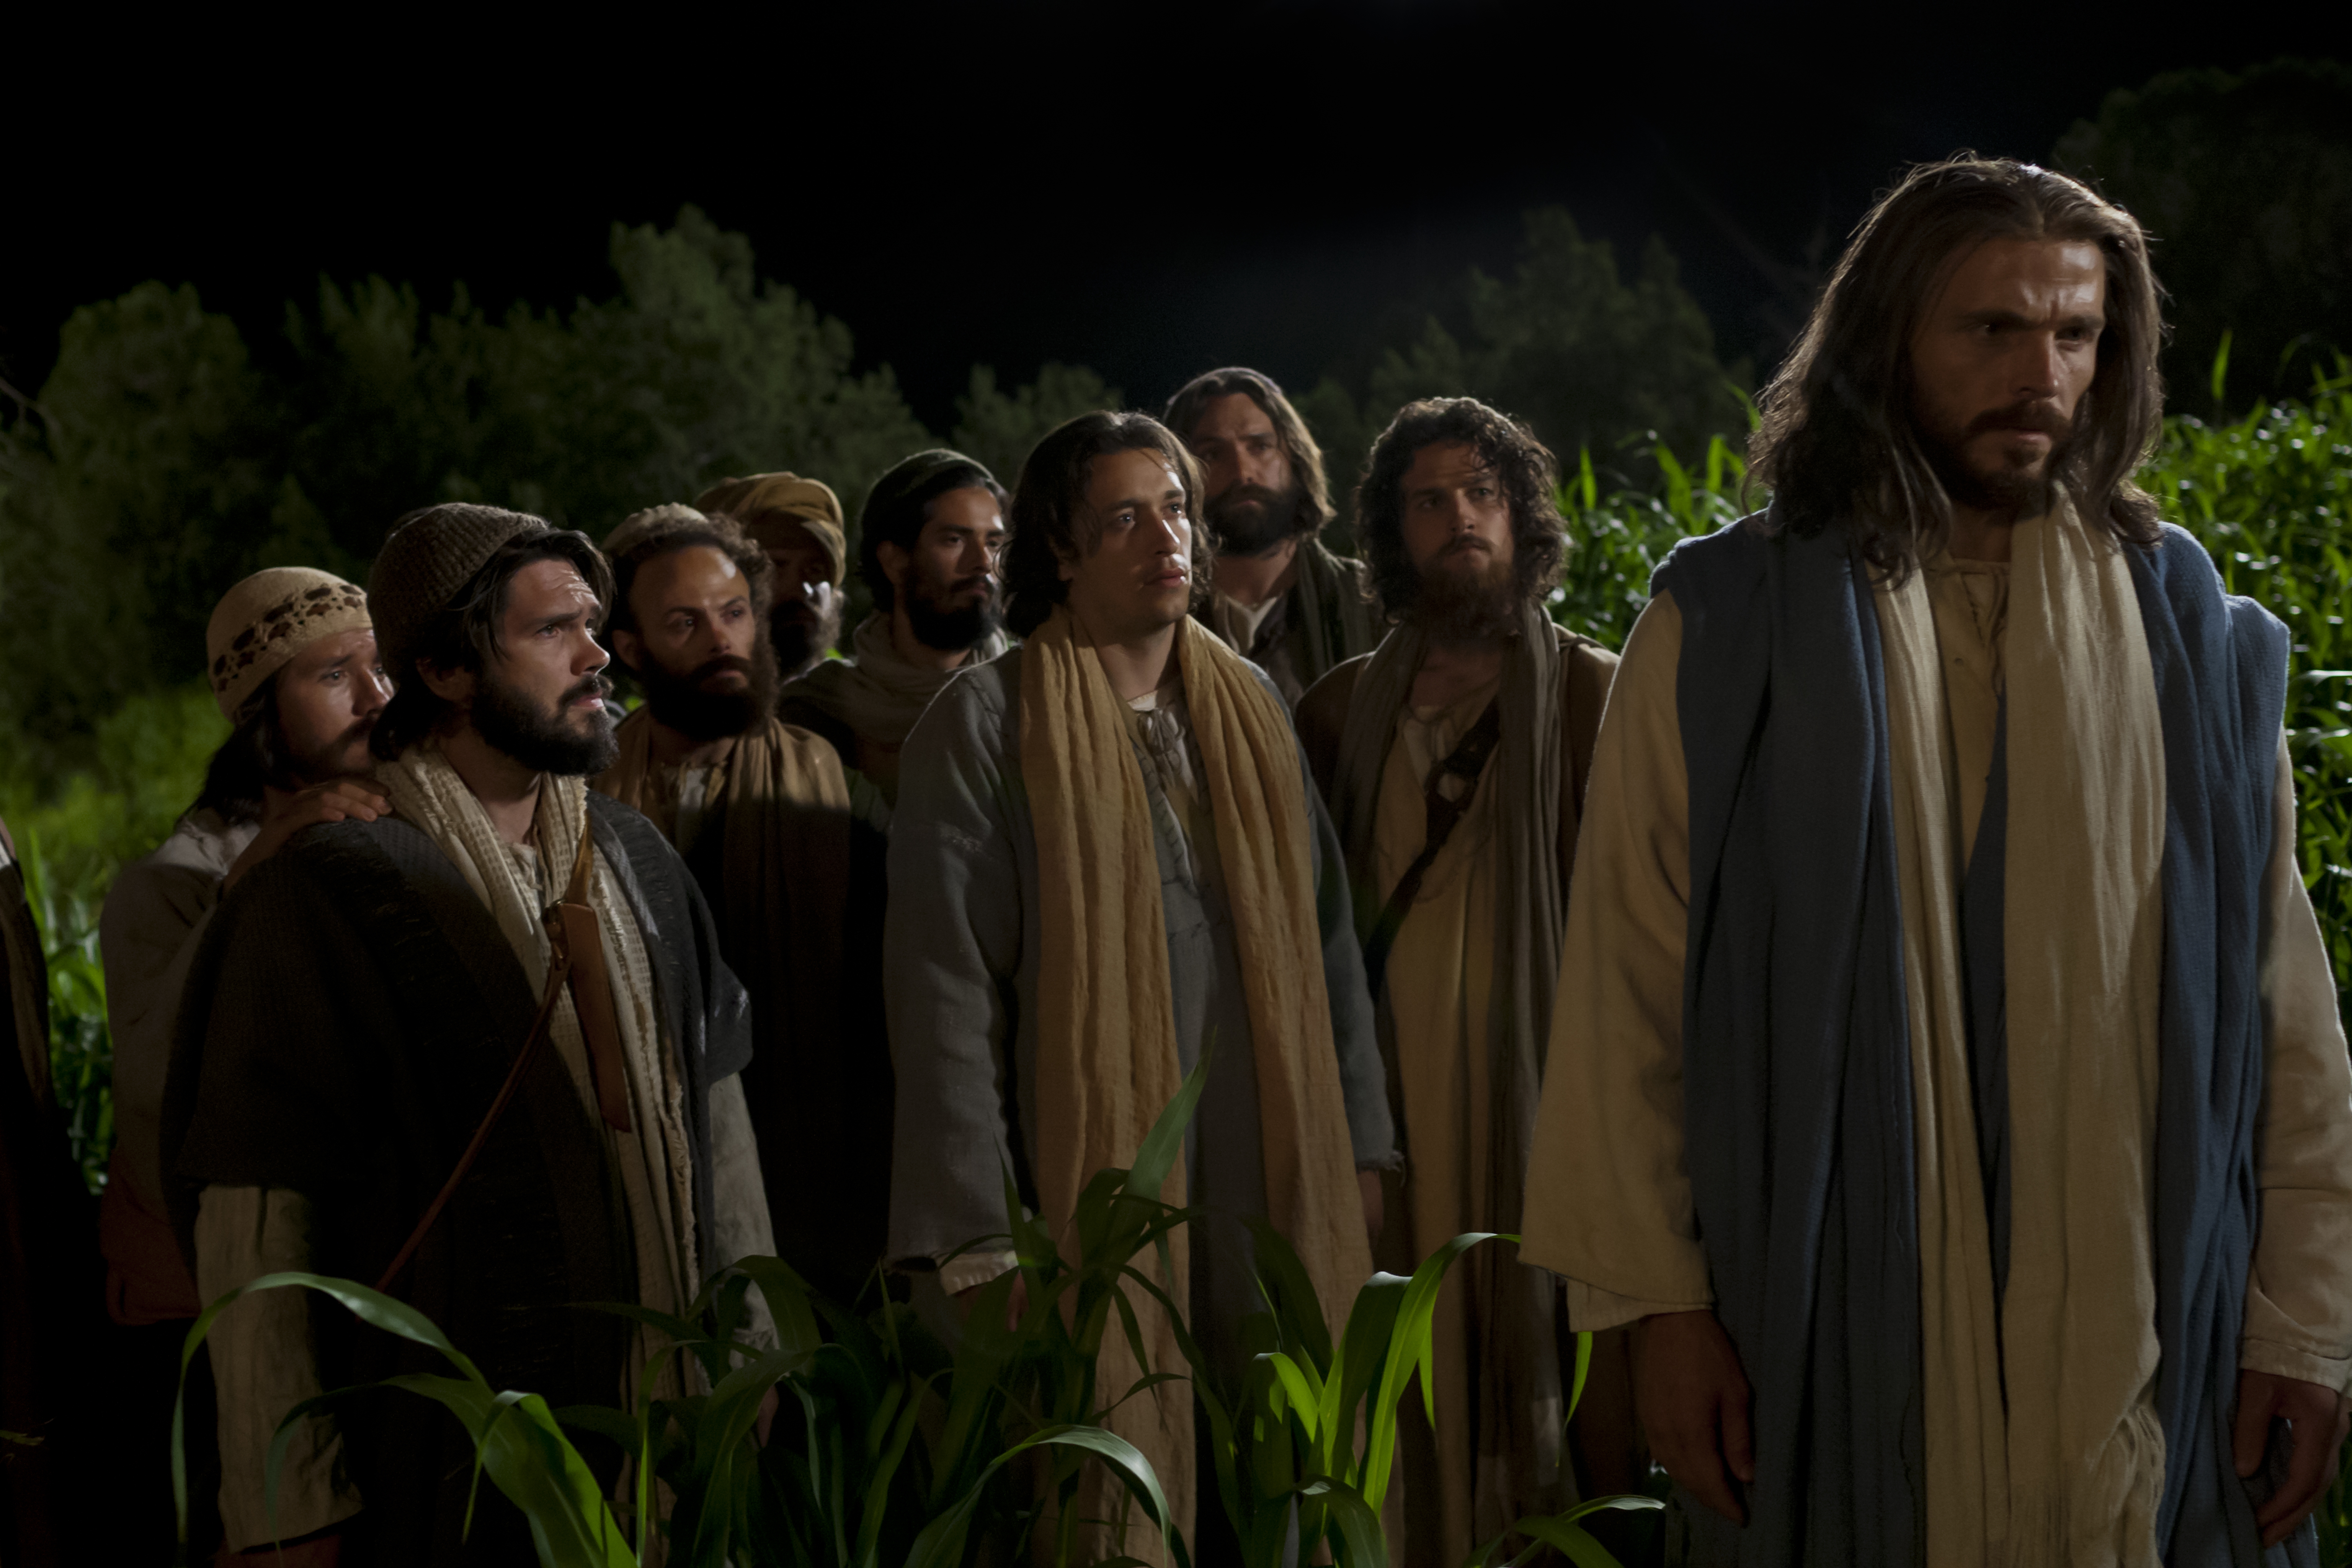 Jesus warns Peter of his forthcoming denial before offering the Intercessory Prayer.